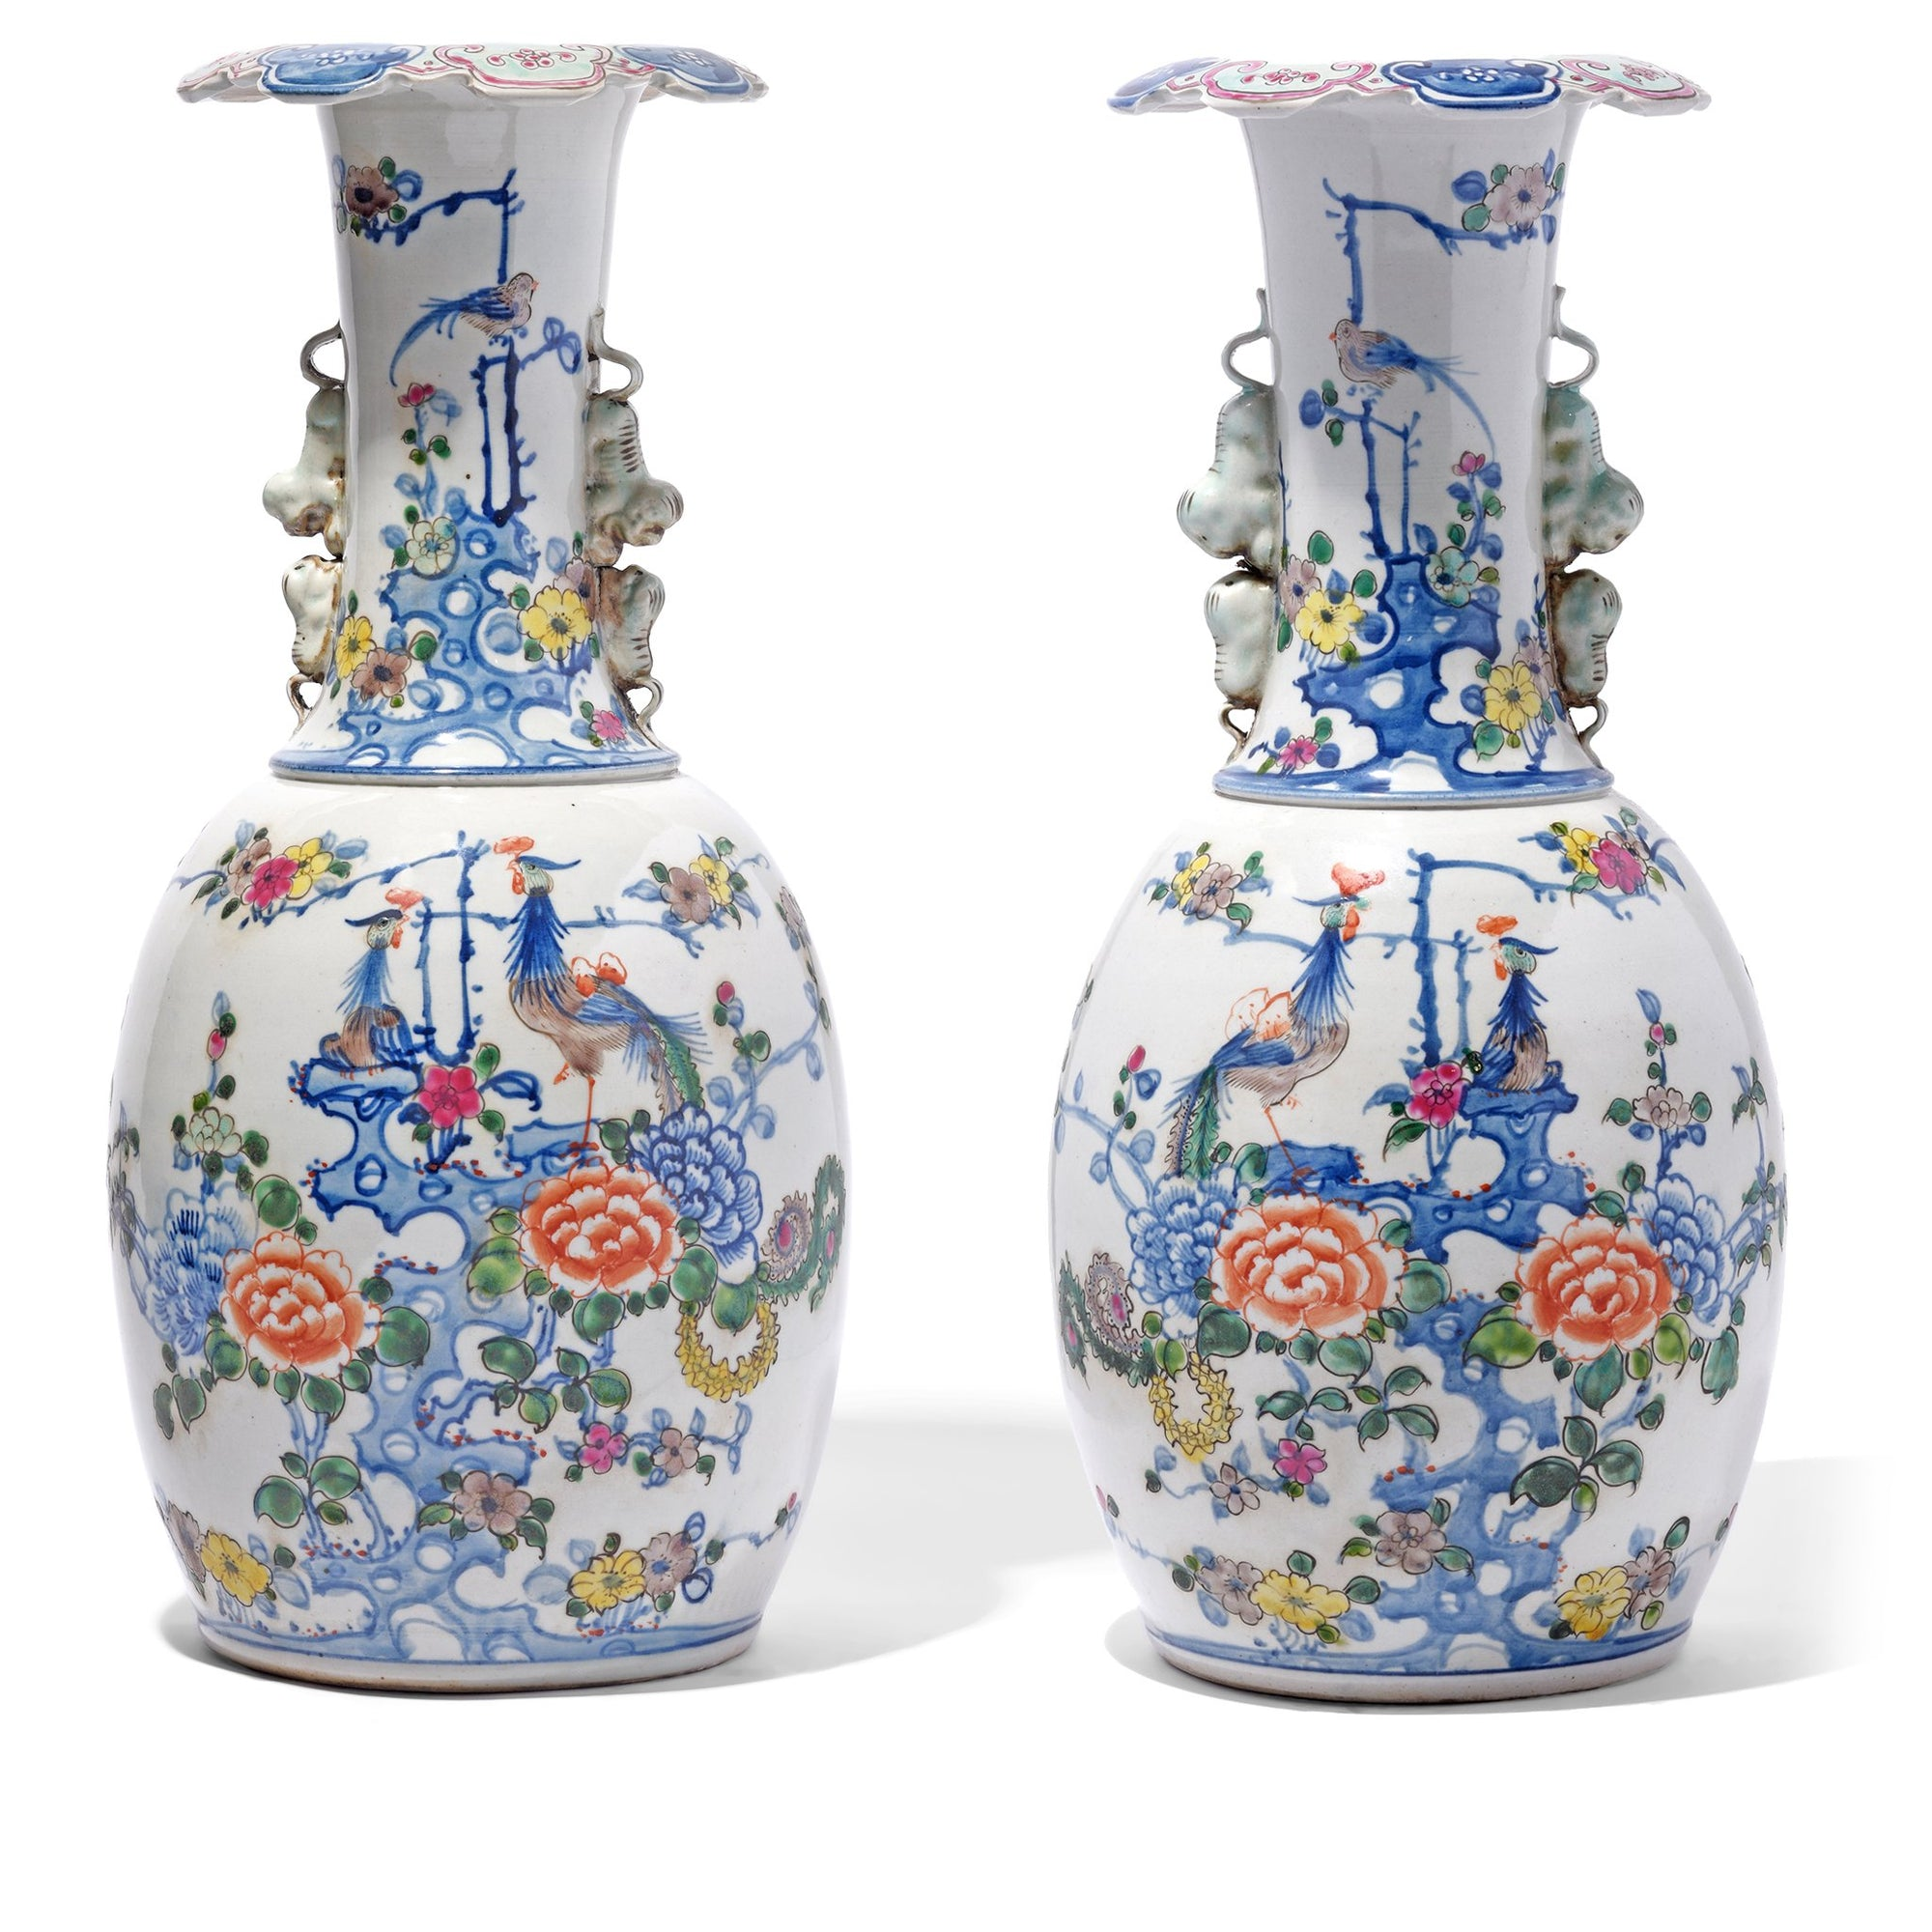 Right Facing Chinese Reproduction Porcelain Liuyeping Vase with peacock and floral design. | Indigo Antiques